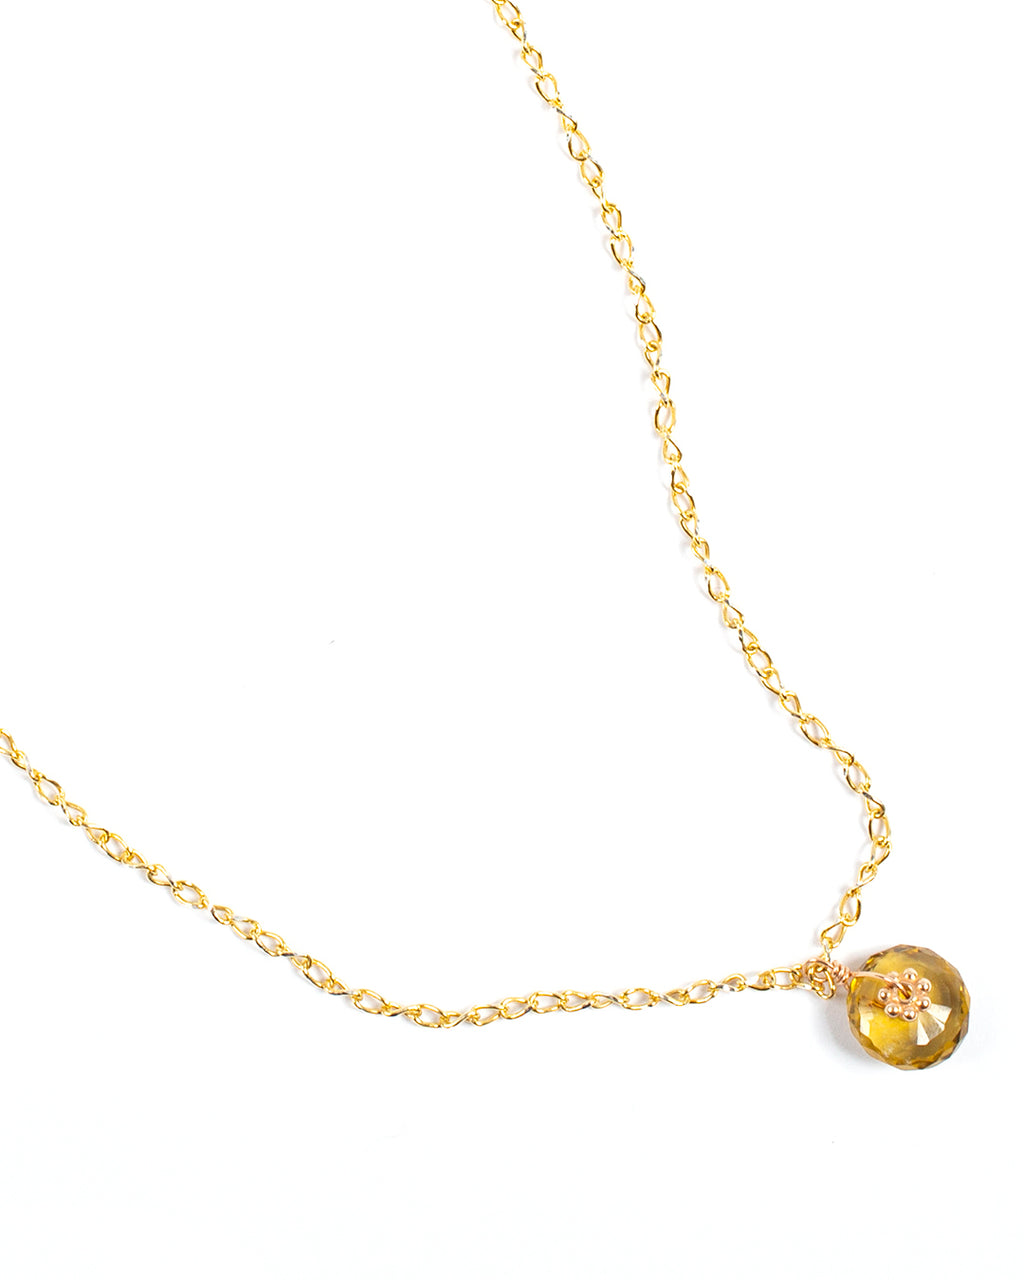 Necklace with stone washer pendant and golden stud - 022